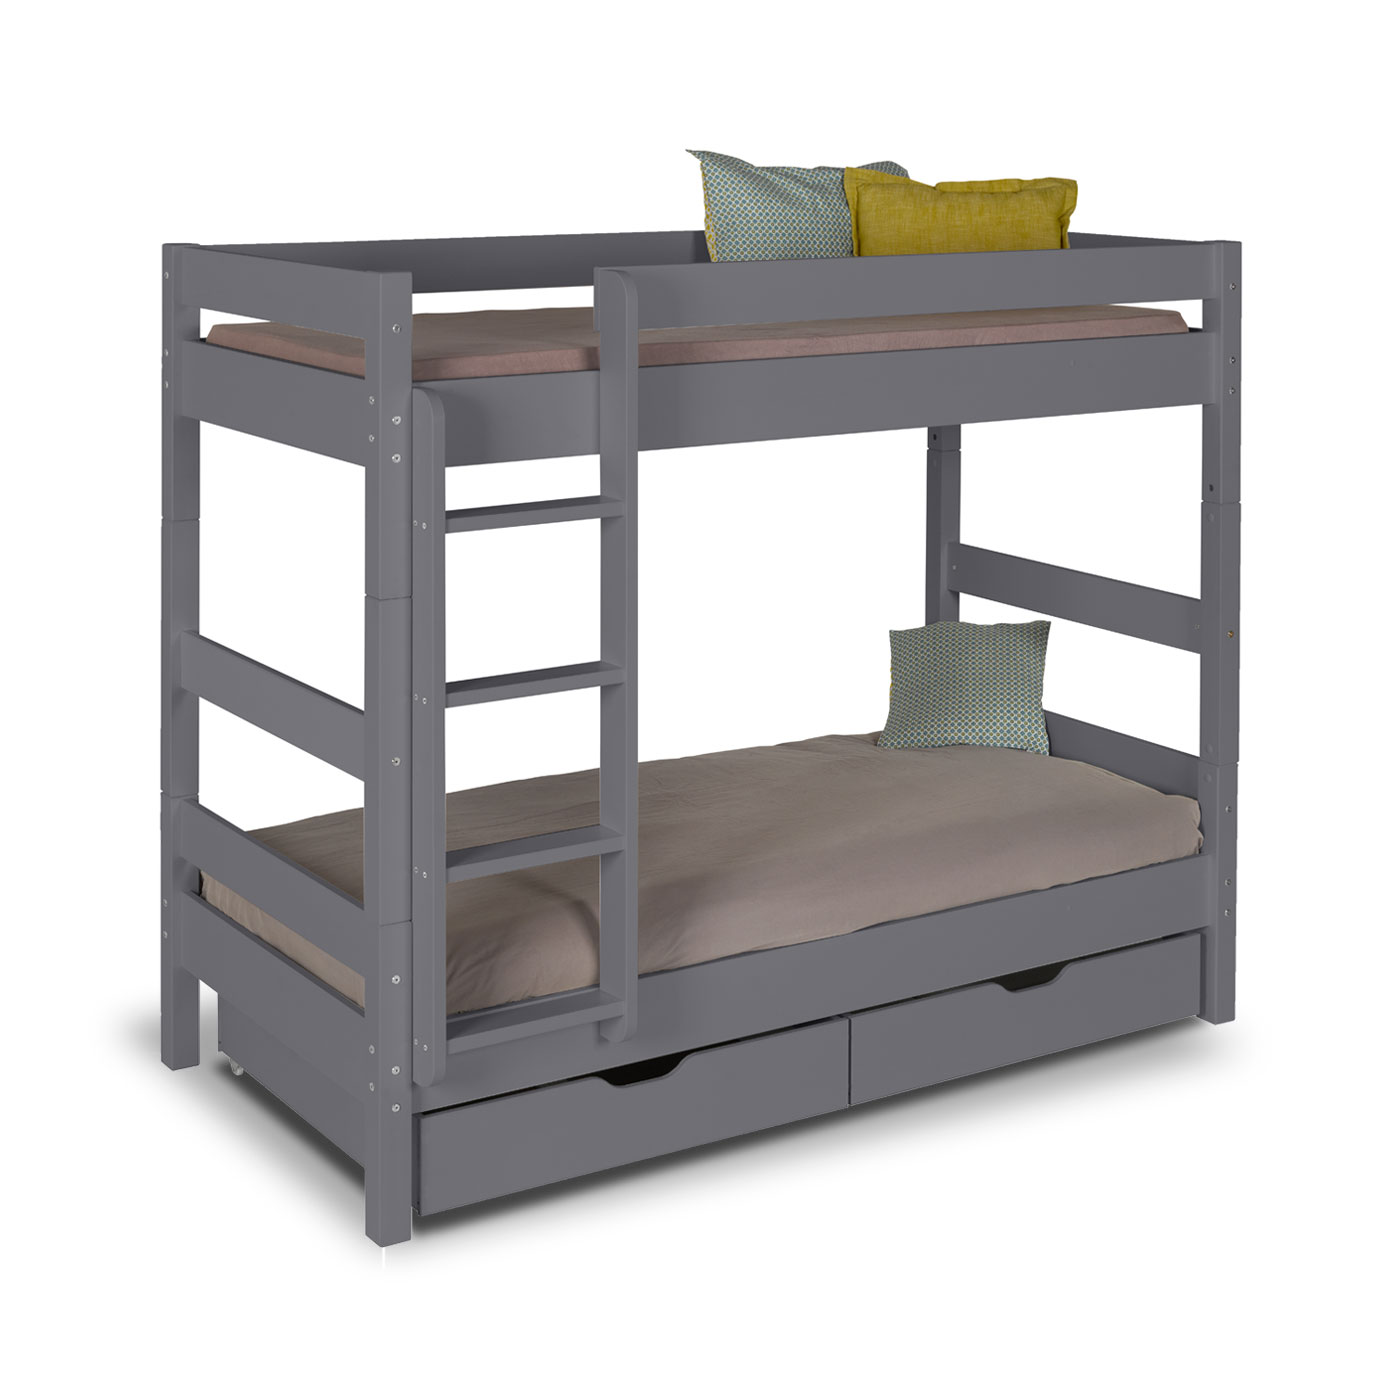 Lit superpos volutif wood gris anthracite idkid 39 s - Lit enfant superposer ...